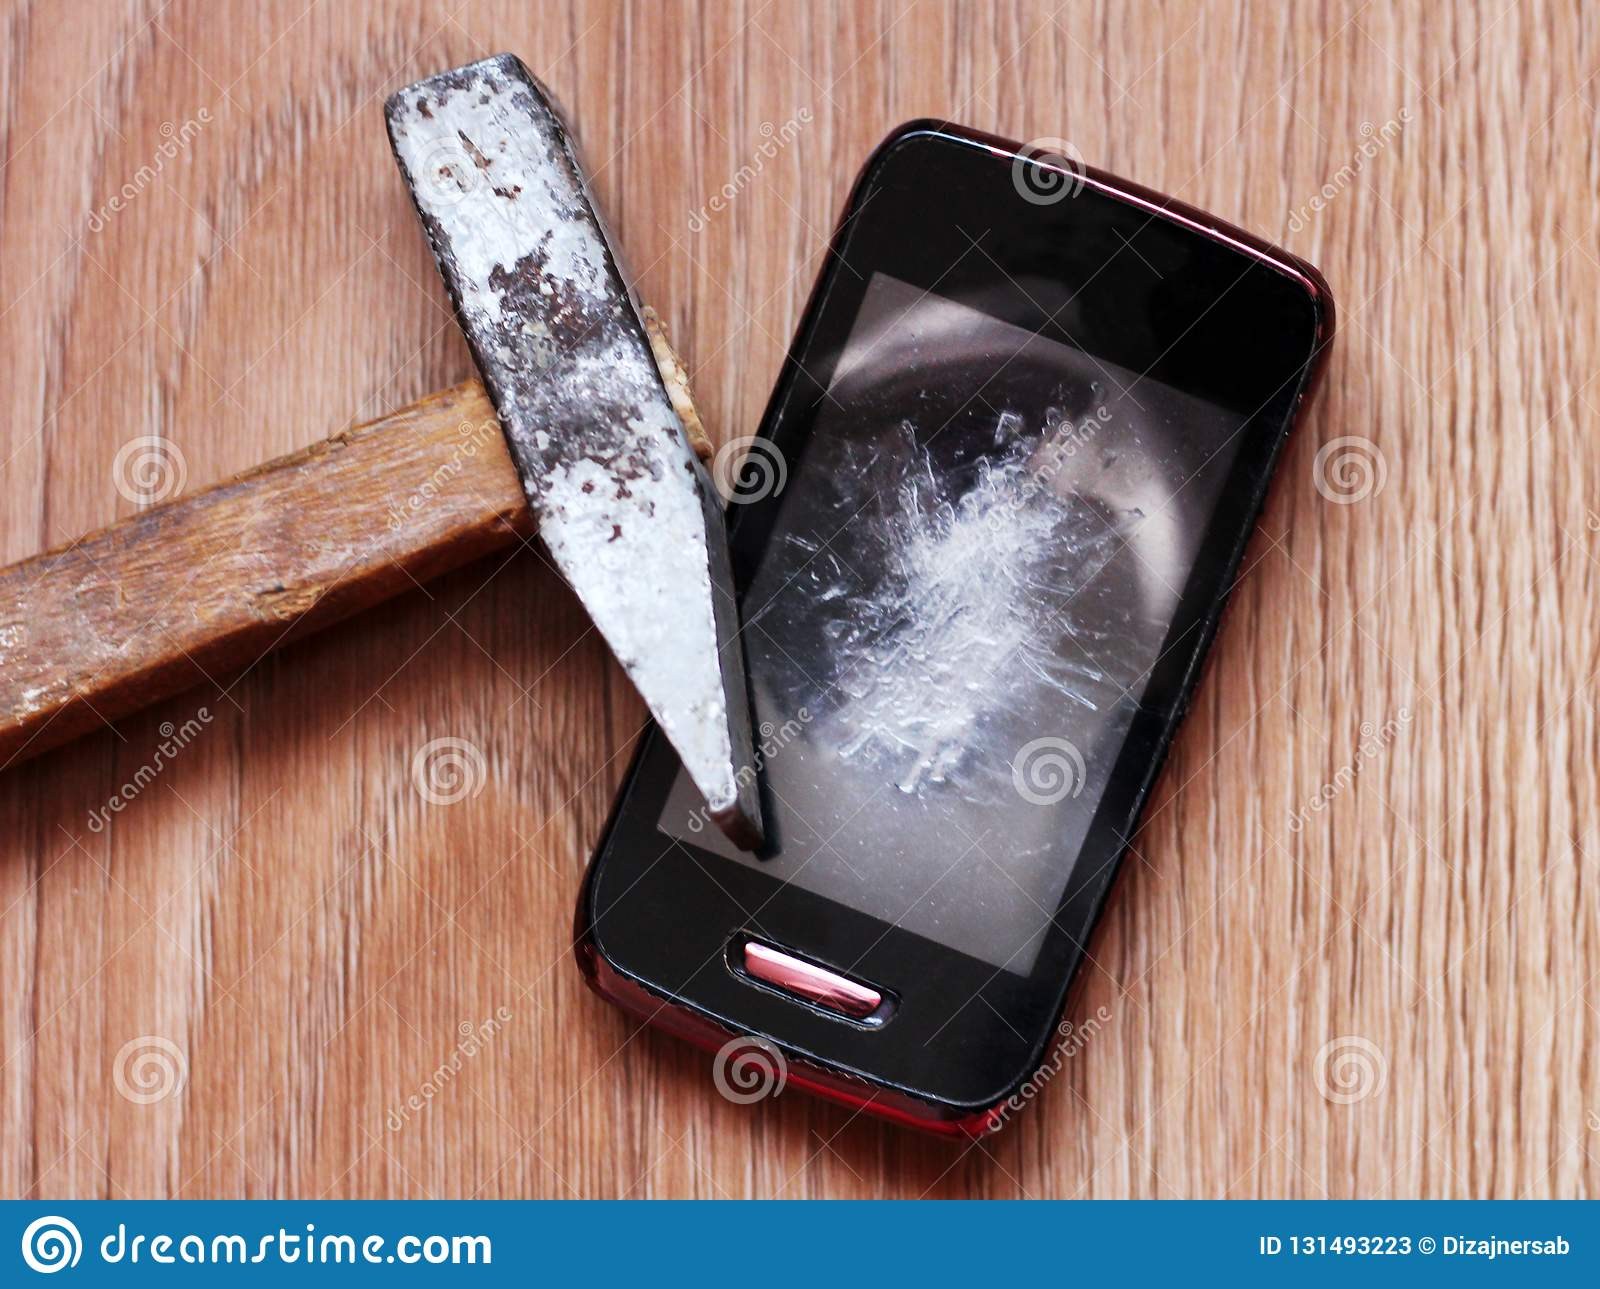 Broken smartphone with cracked screen with hummer on wooden background